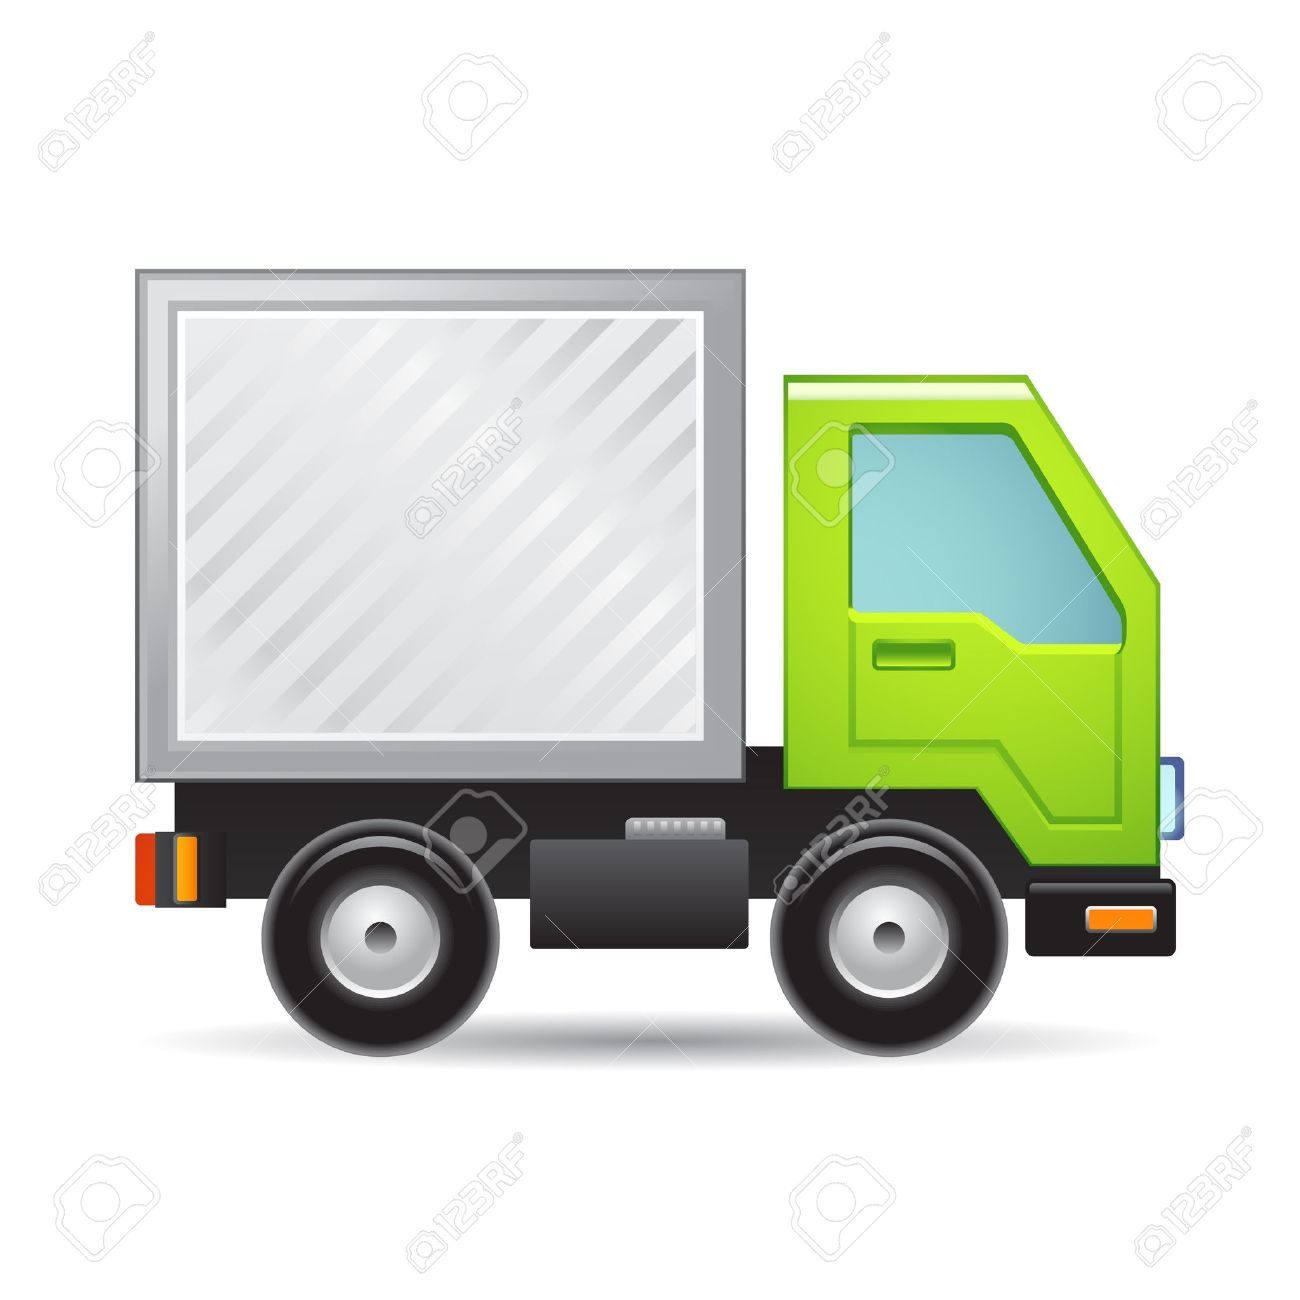 green truck icon royalty free cliparts vectors and stock